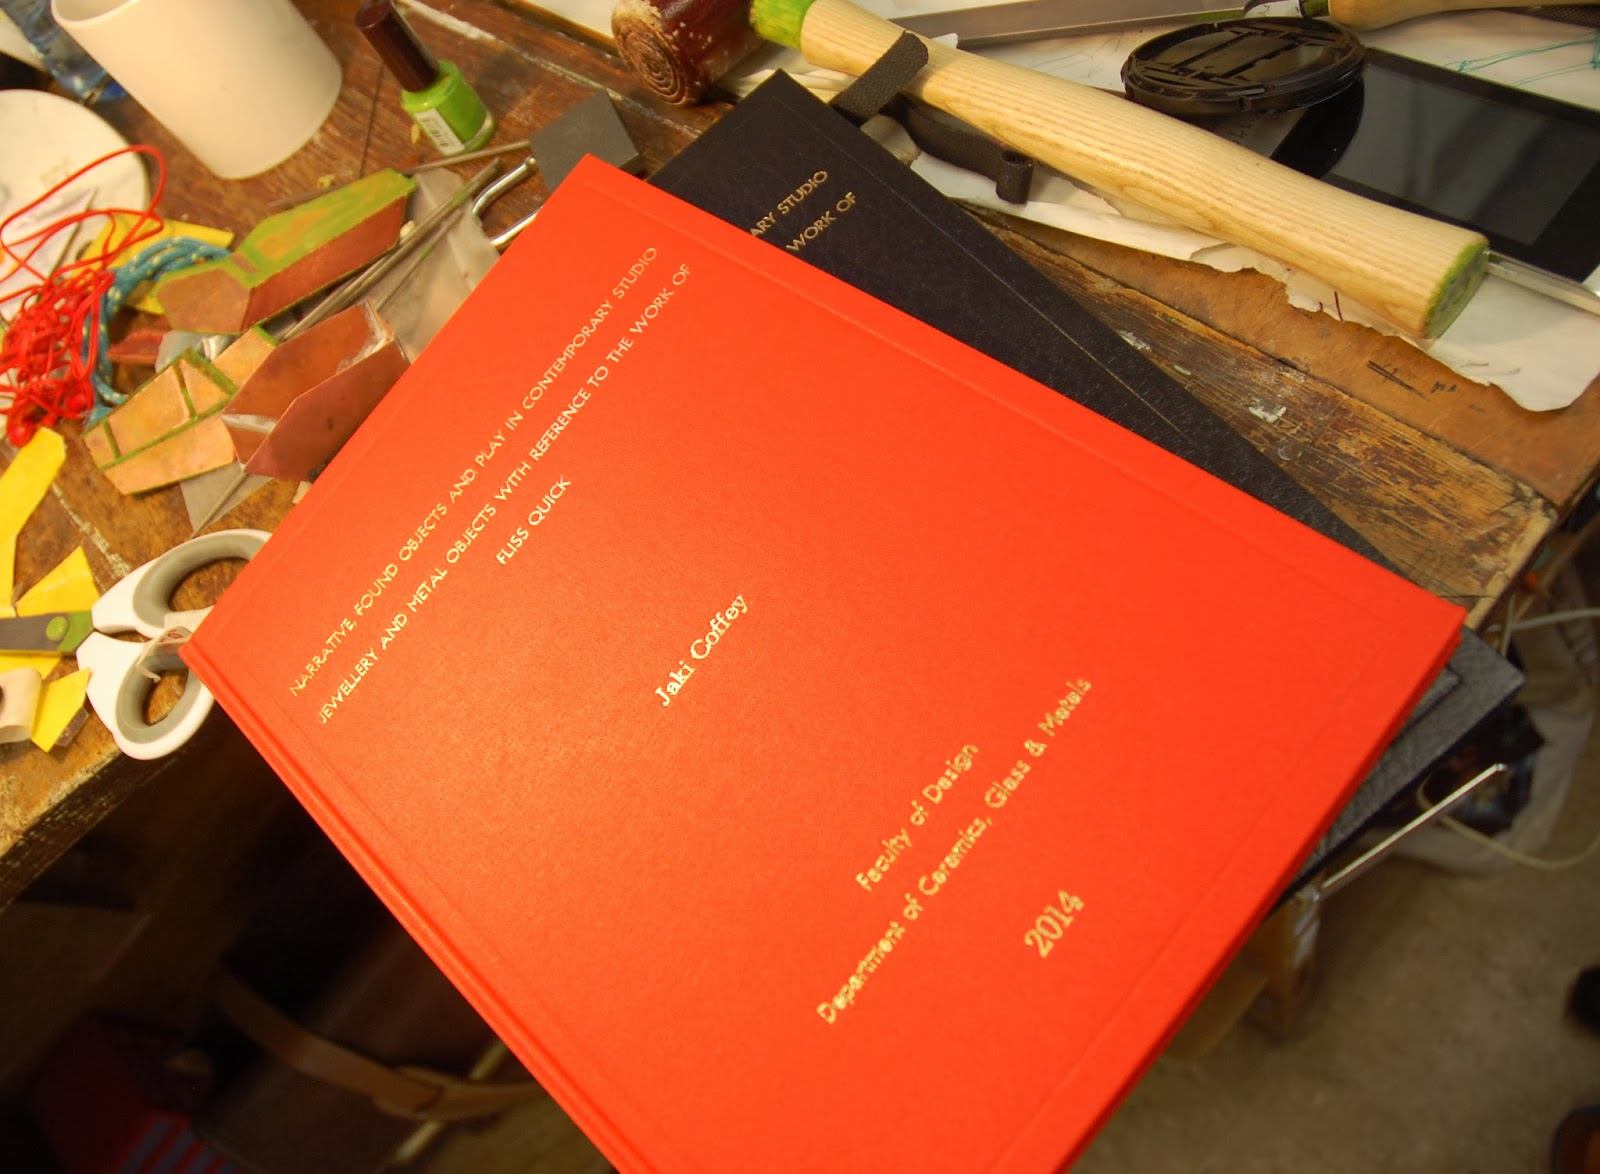 A book by Jaki Coffey entitled 'Narrative Found Objects and Play in Contemporary Studio Jewellery and Metal Objects with Reference to Fliss Quick'.